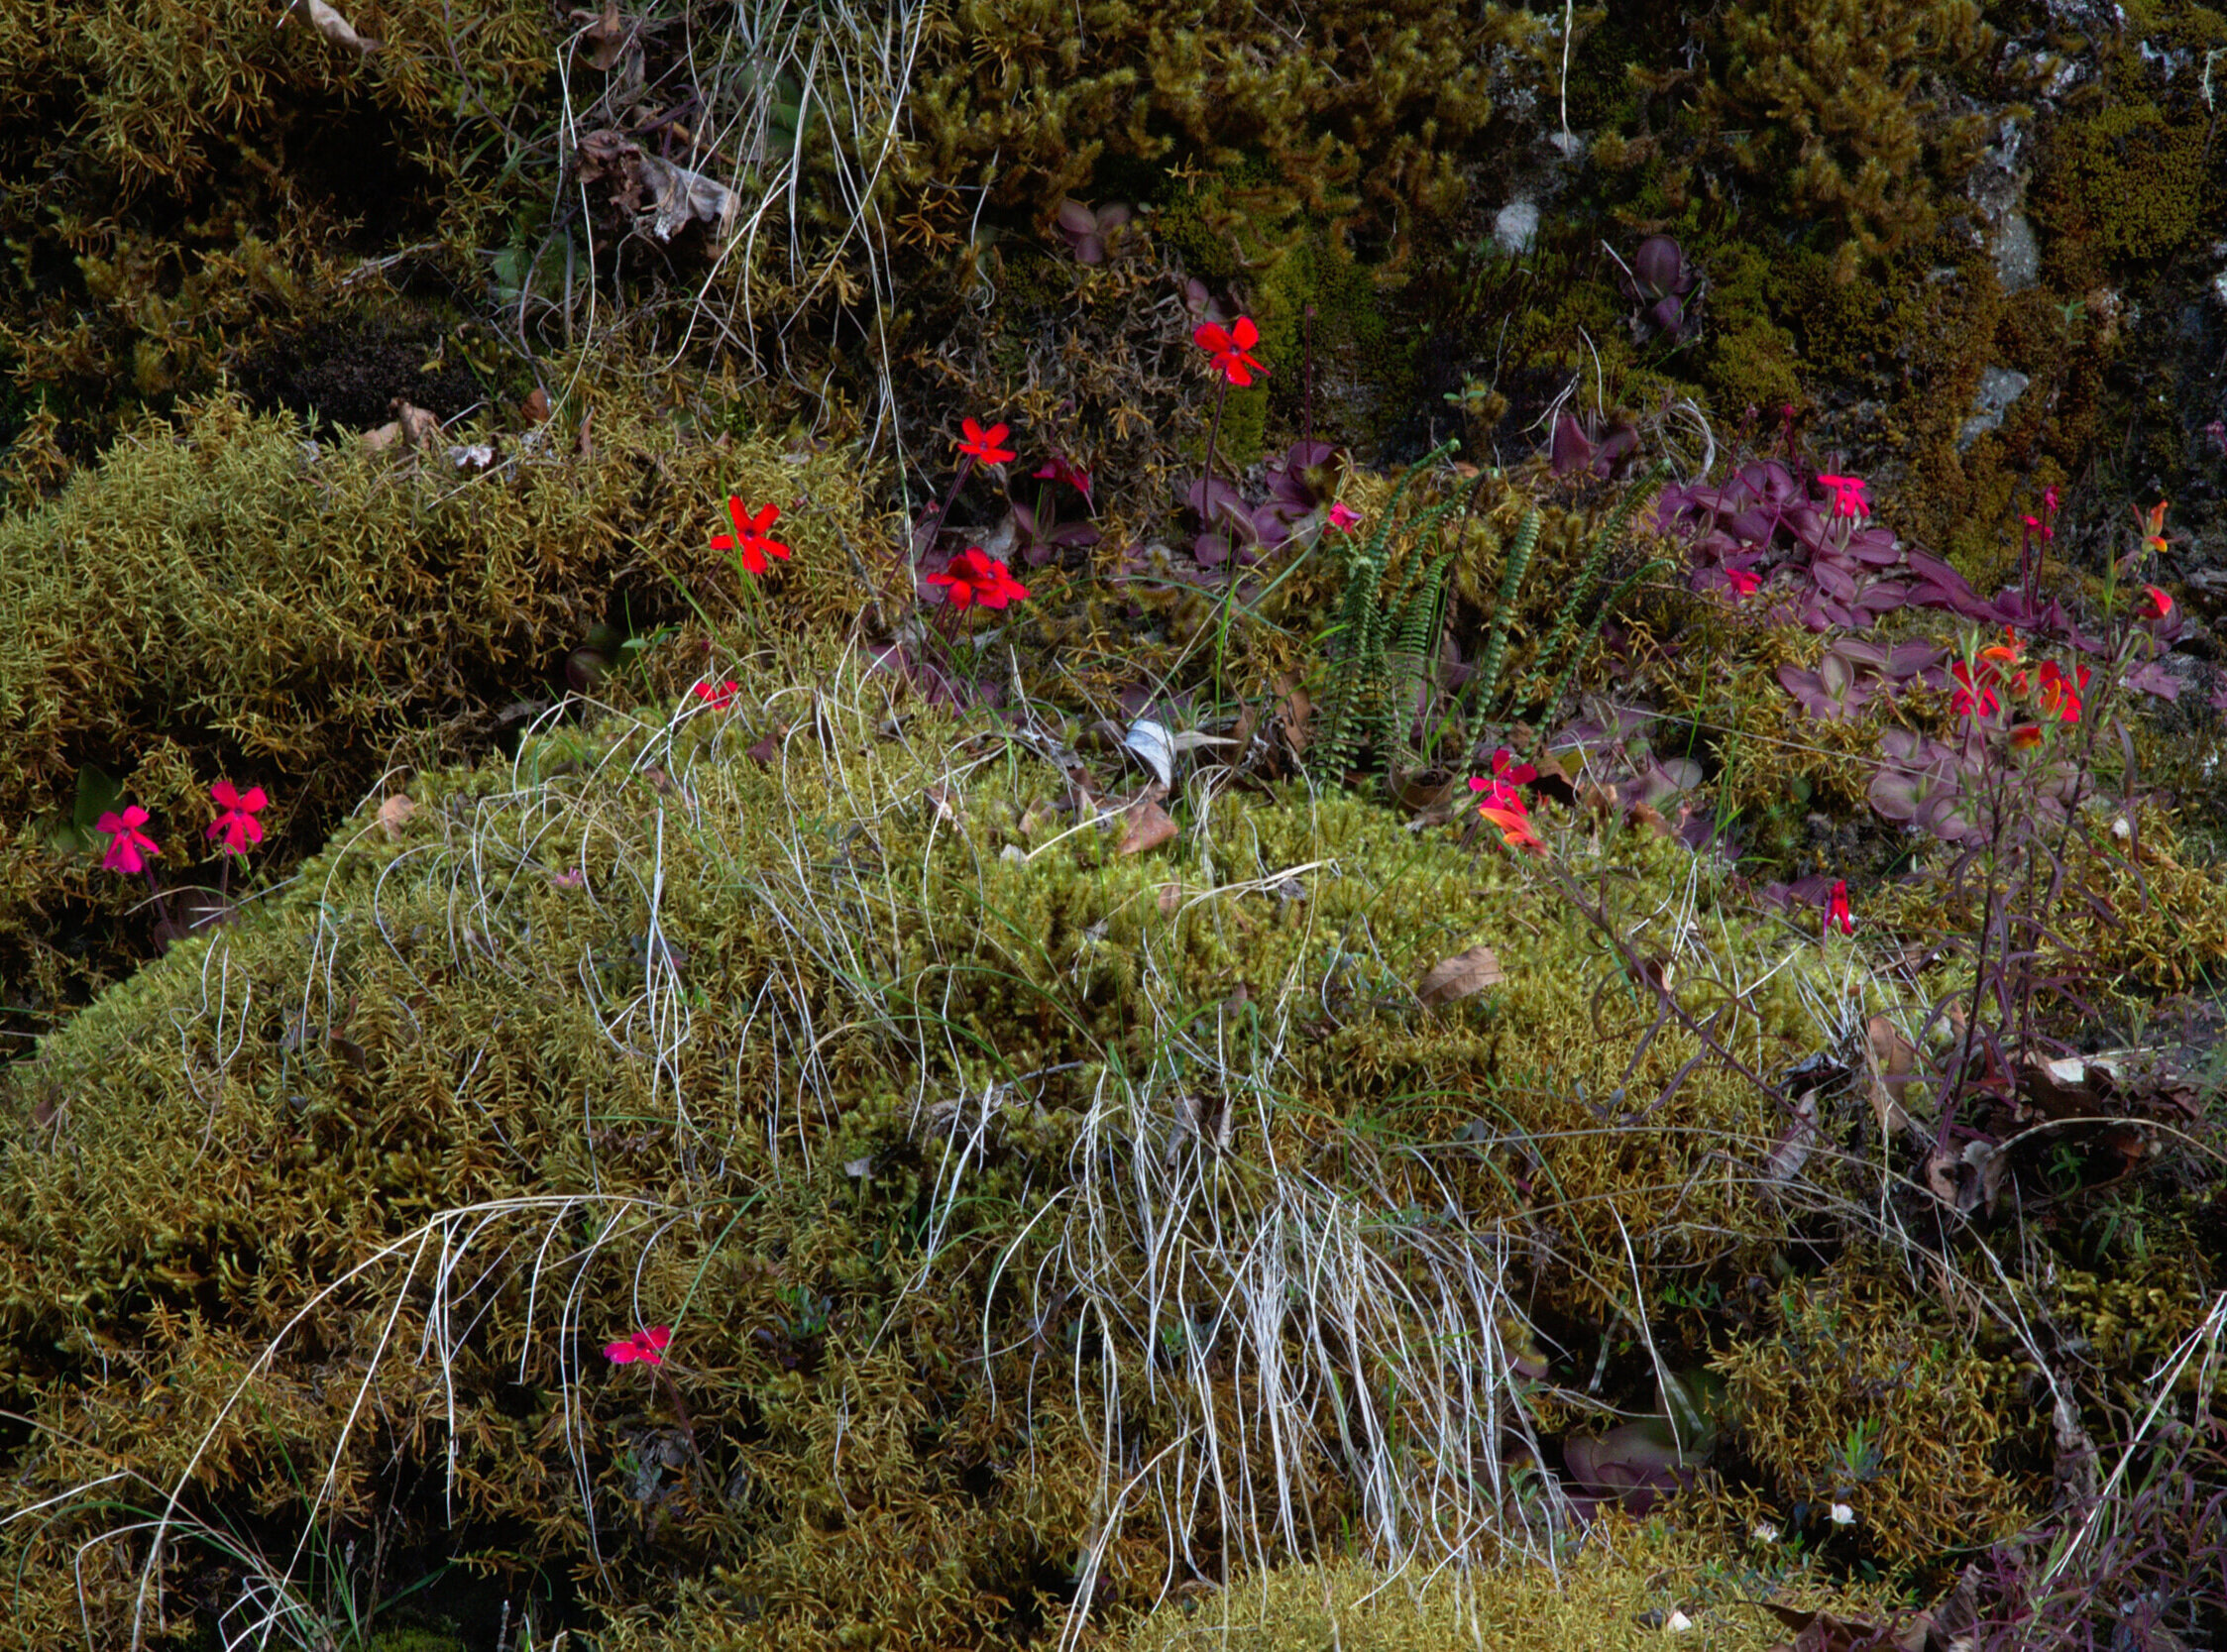 A small colony of  Pinguicula laueana  showing some variation in flower shape and color tone. Image: F. Muller.